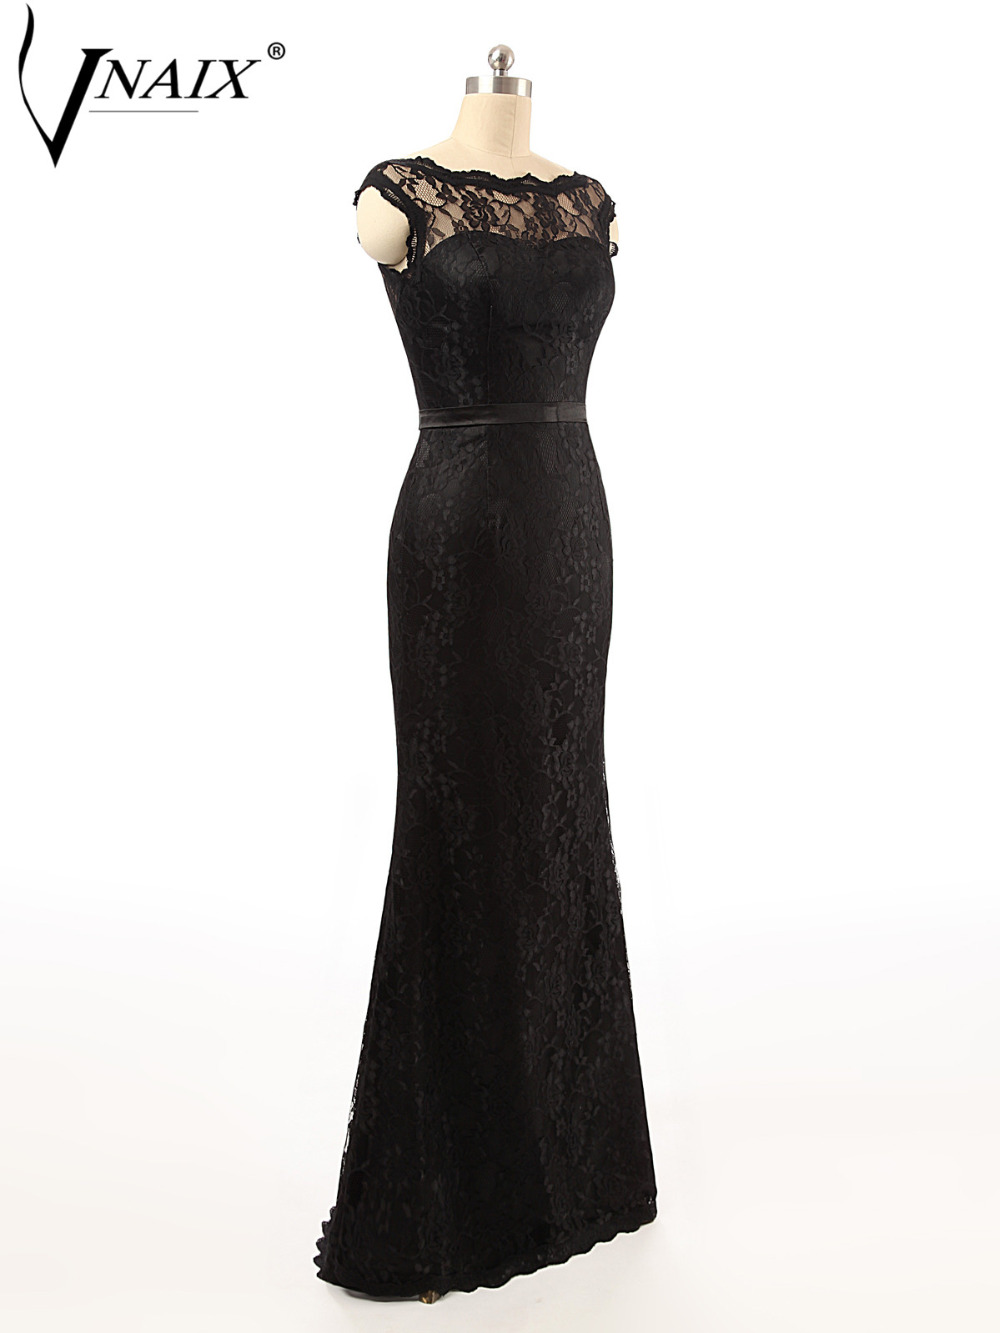 US $136.25  Vnaix B3010 Sweetheart Cap Sleeves See Though Lace Back A Line  Black Plus Size Bridesmaid Dress-in Bridesmaid Dresses from Weddings & ...